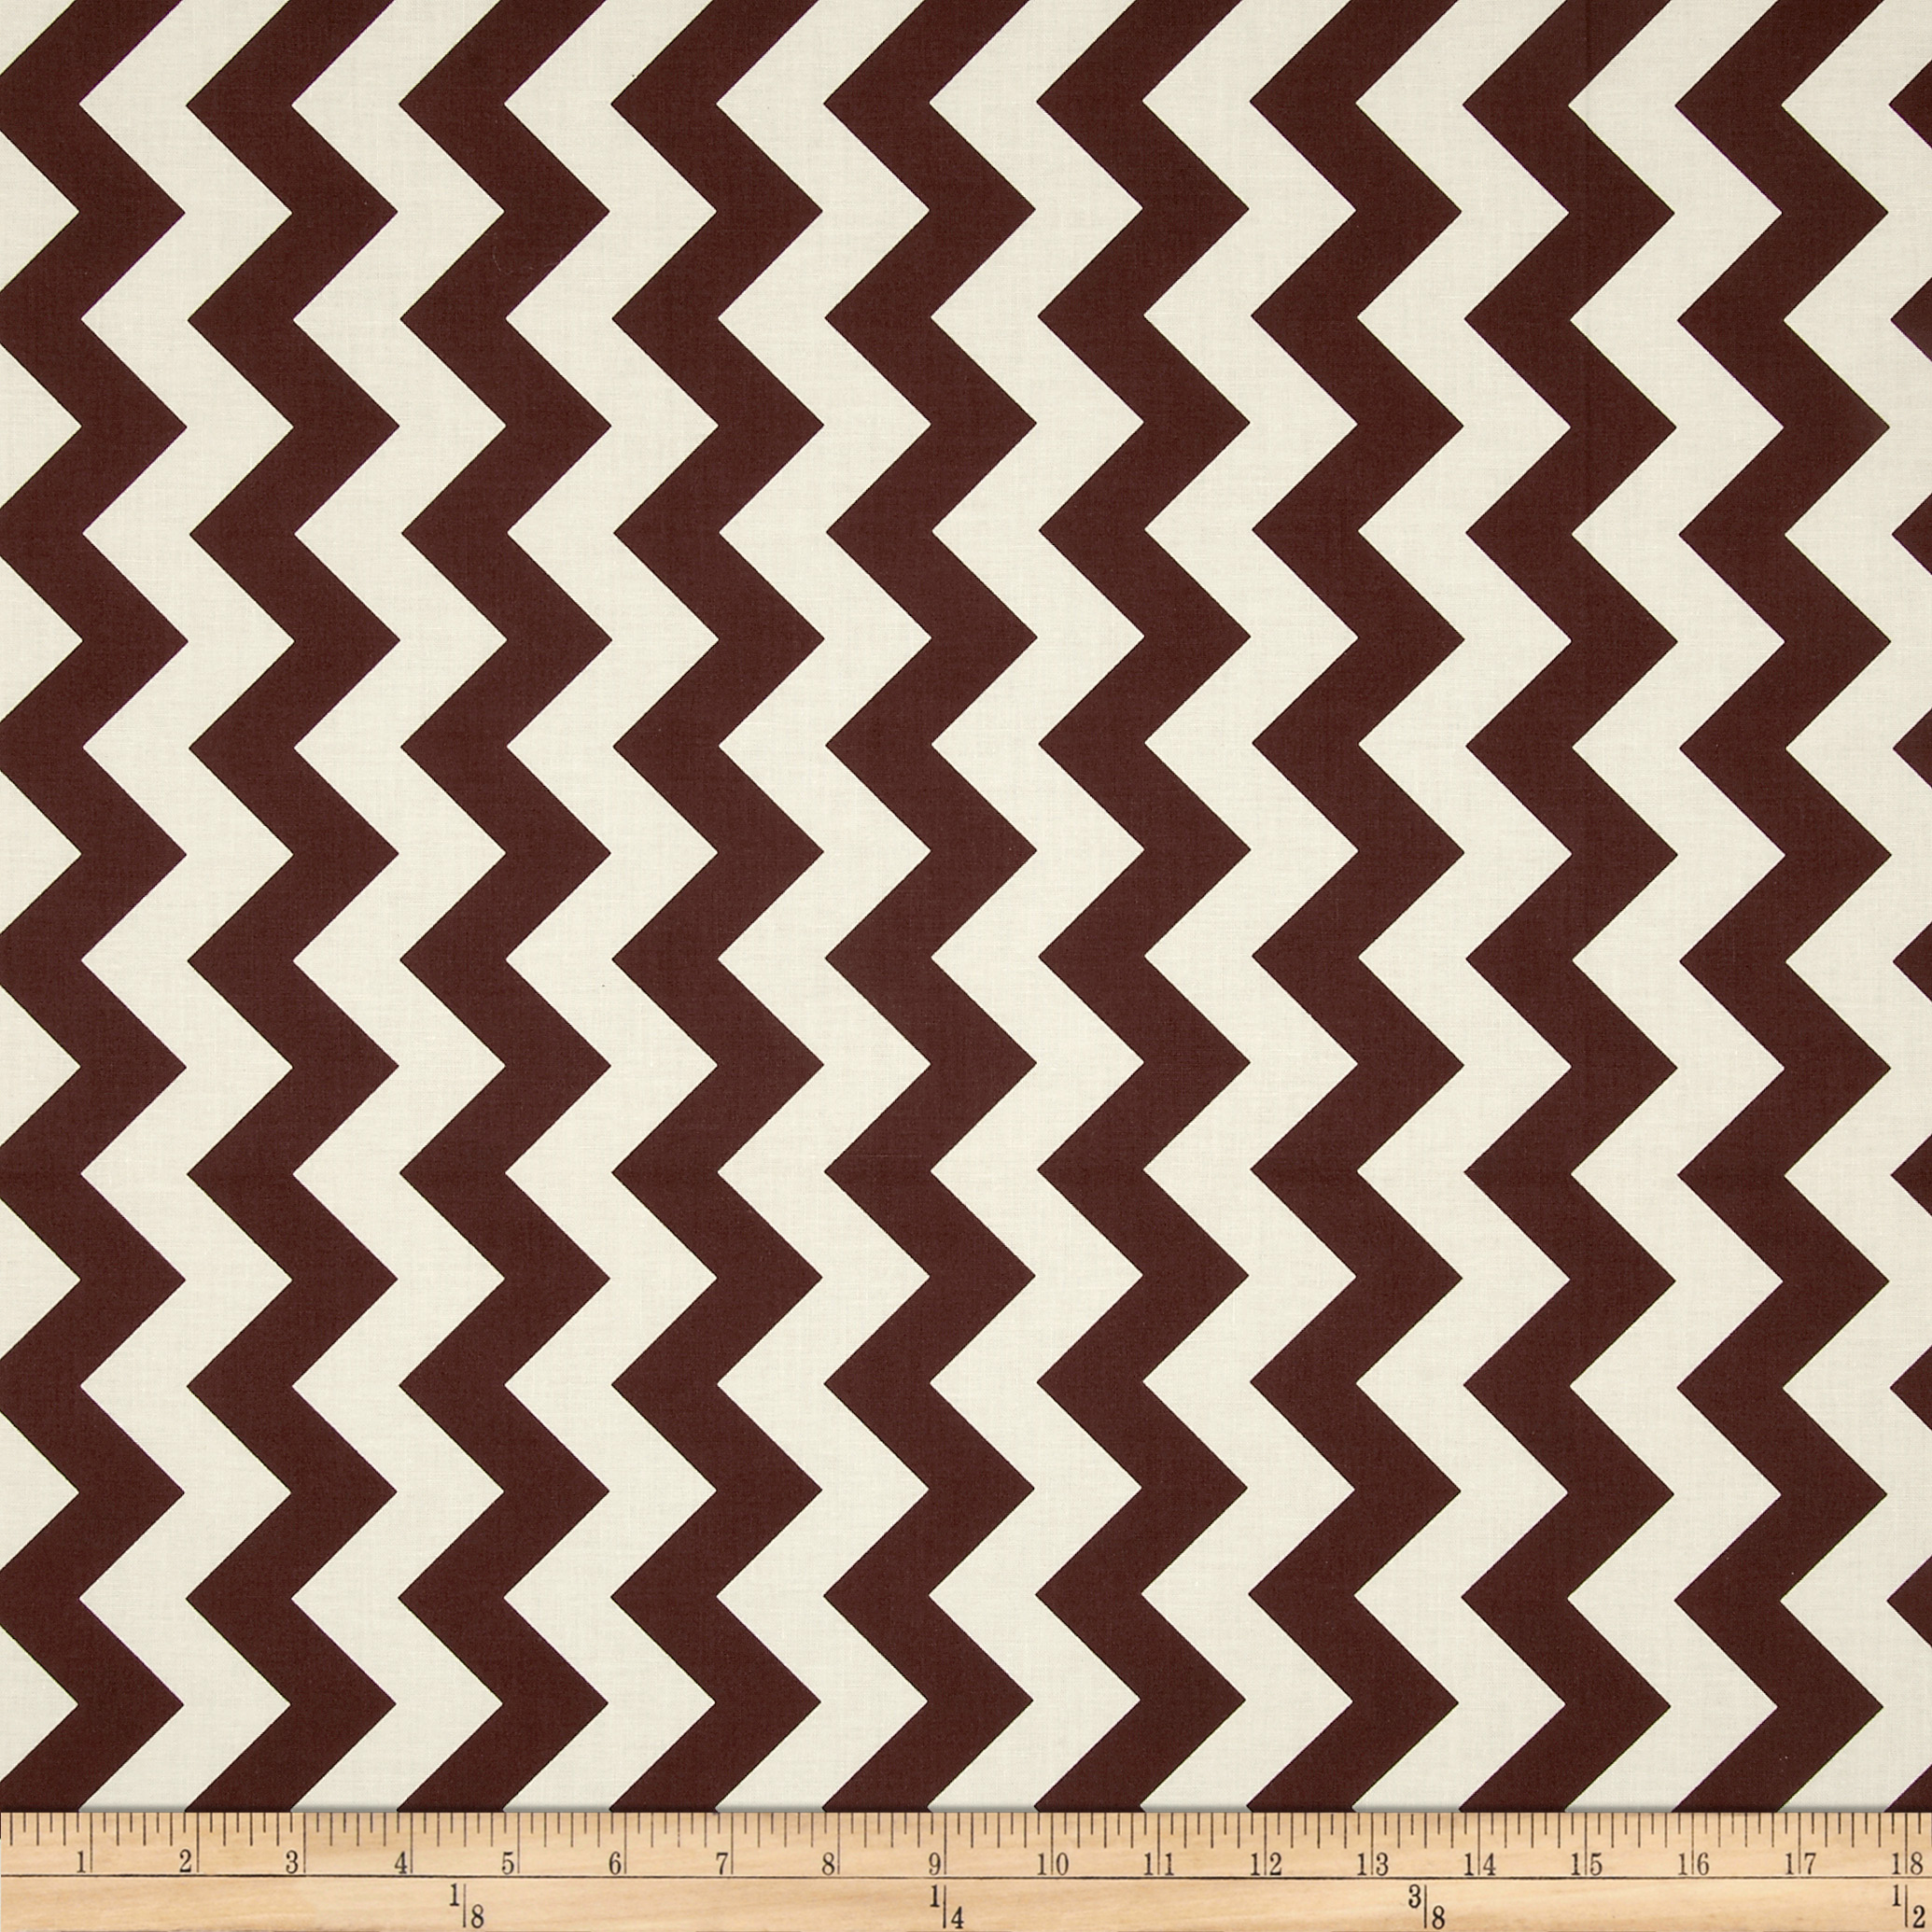 Riley Blake Le Creme Basics Chevron Brown/Cream